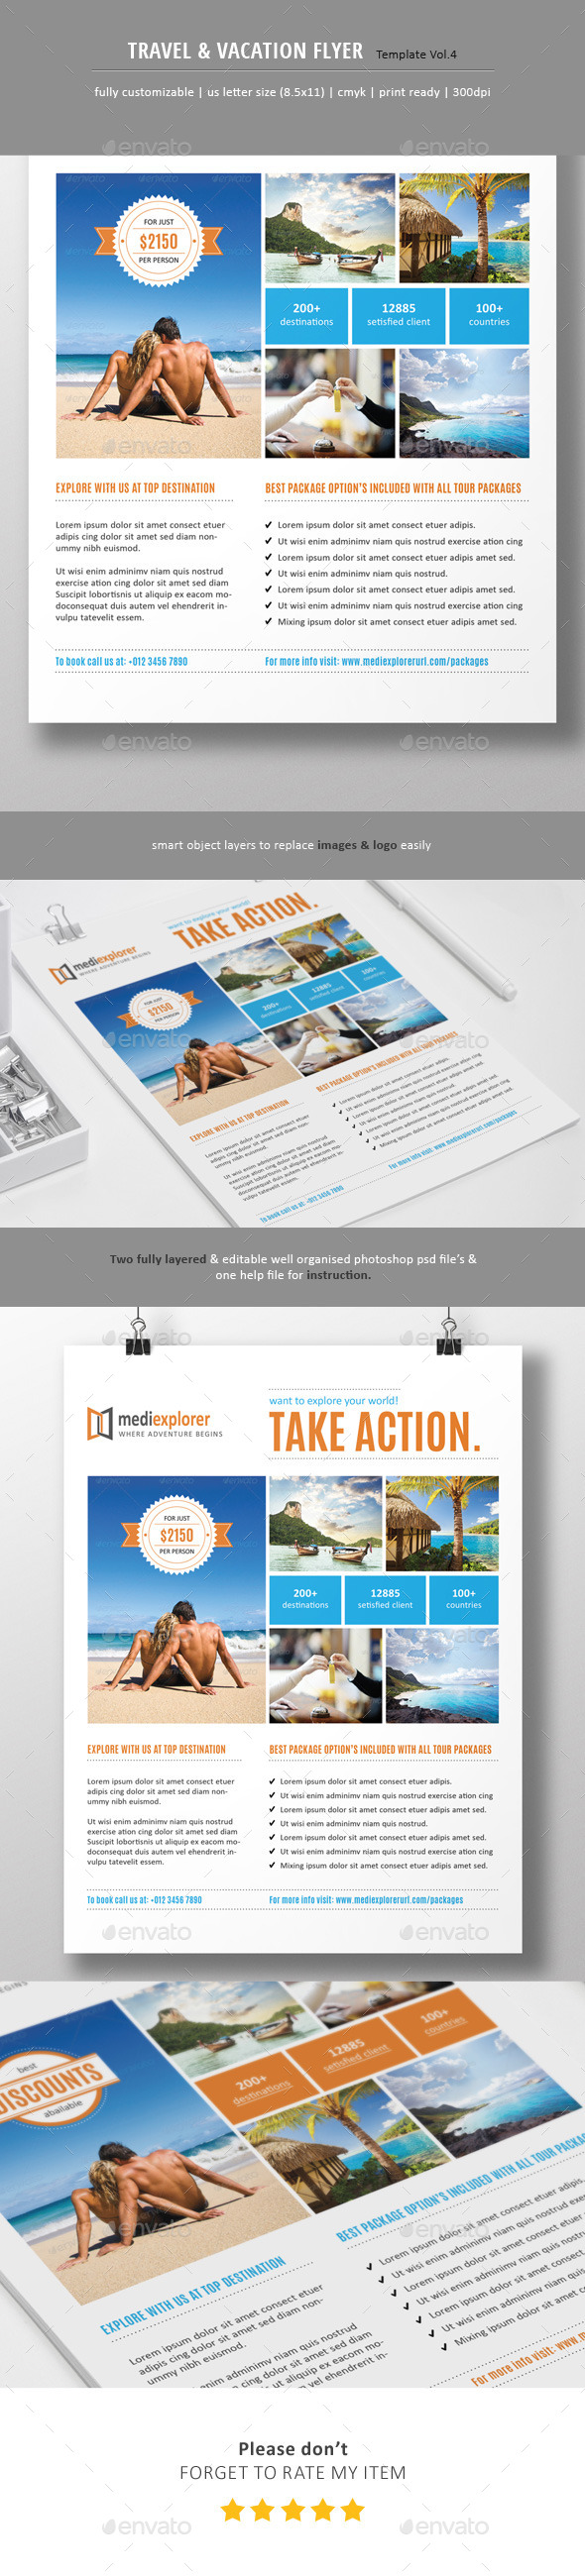 GraphicRiver Travel & Vacation Flyer Ads Vol.4 10945010